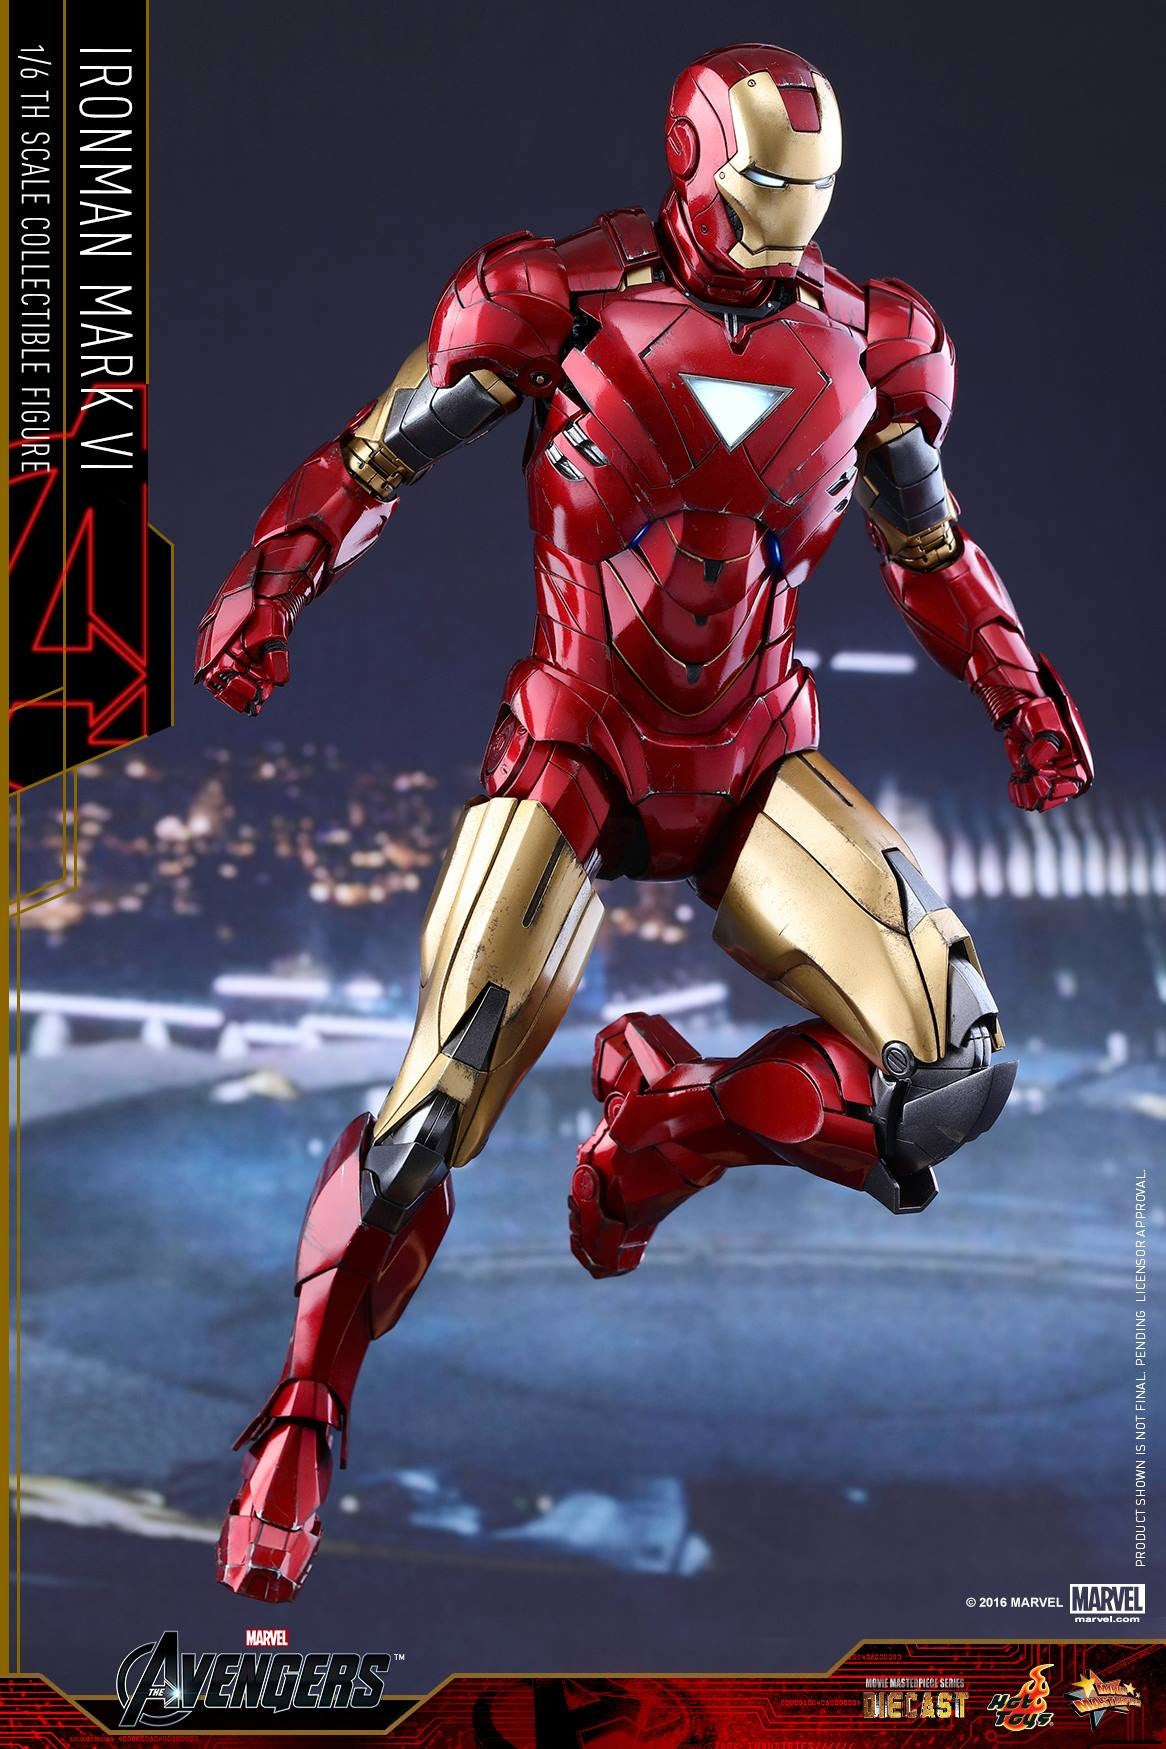 Hot Toys - MMS378D17 - The Avengers - Iron Man Mark VI (DIECAST) (Normal Edition) - Marvelous Toys - 5